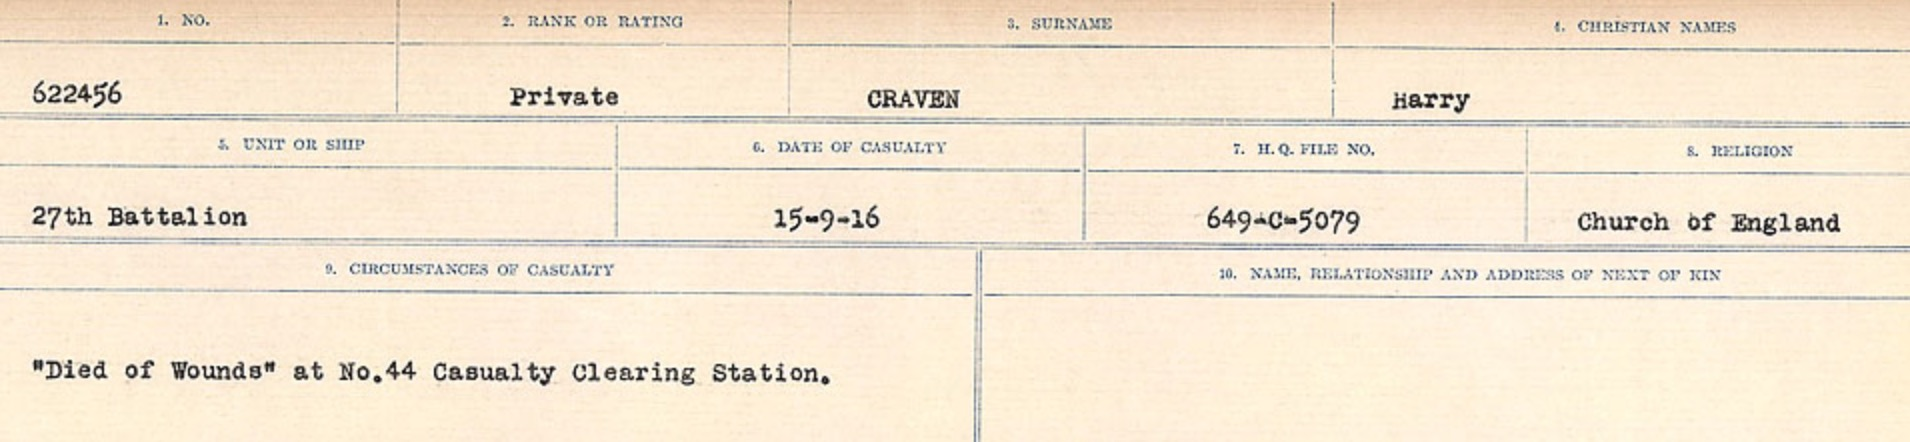 Circumstances of death registers– Source: Library and Archives Canada. CIRCUMSTANCES OF DEATH REGISTERS, FIRST WORLD WAR Surnames: CRABB TO CROSSLAND Microform Sequence 24; Volume Number 31829_B016733. Reference RG150, 1992-93/314, 168. Page 291 of 788.